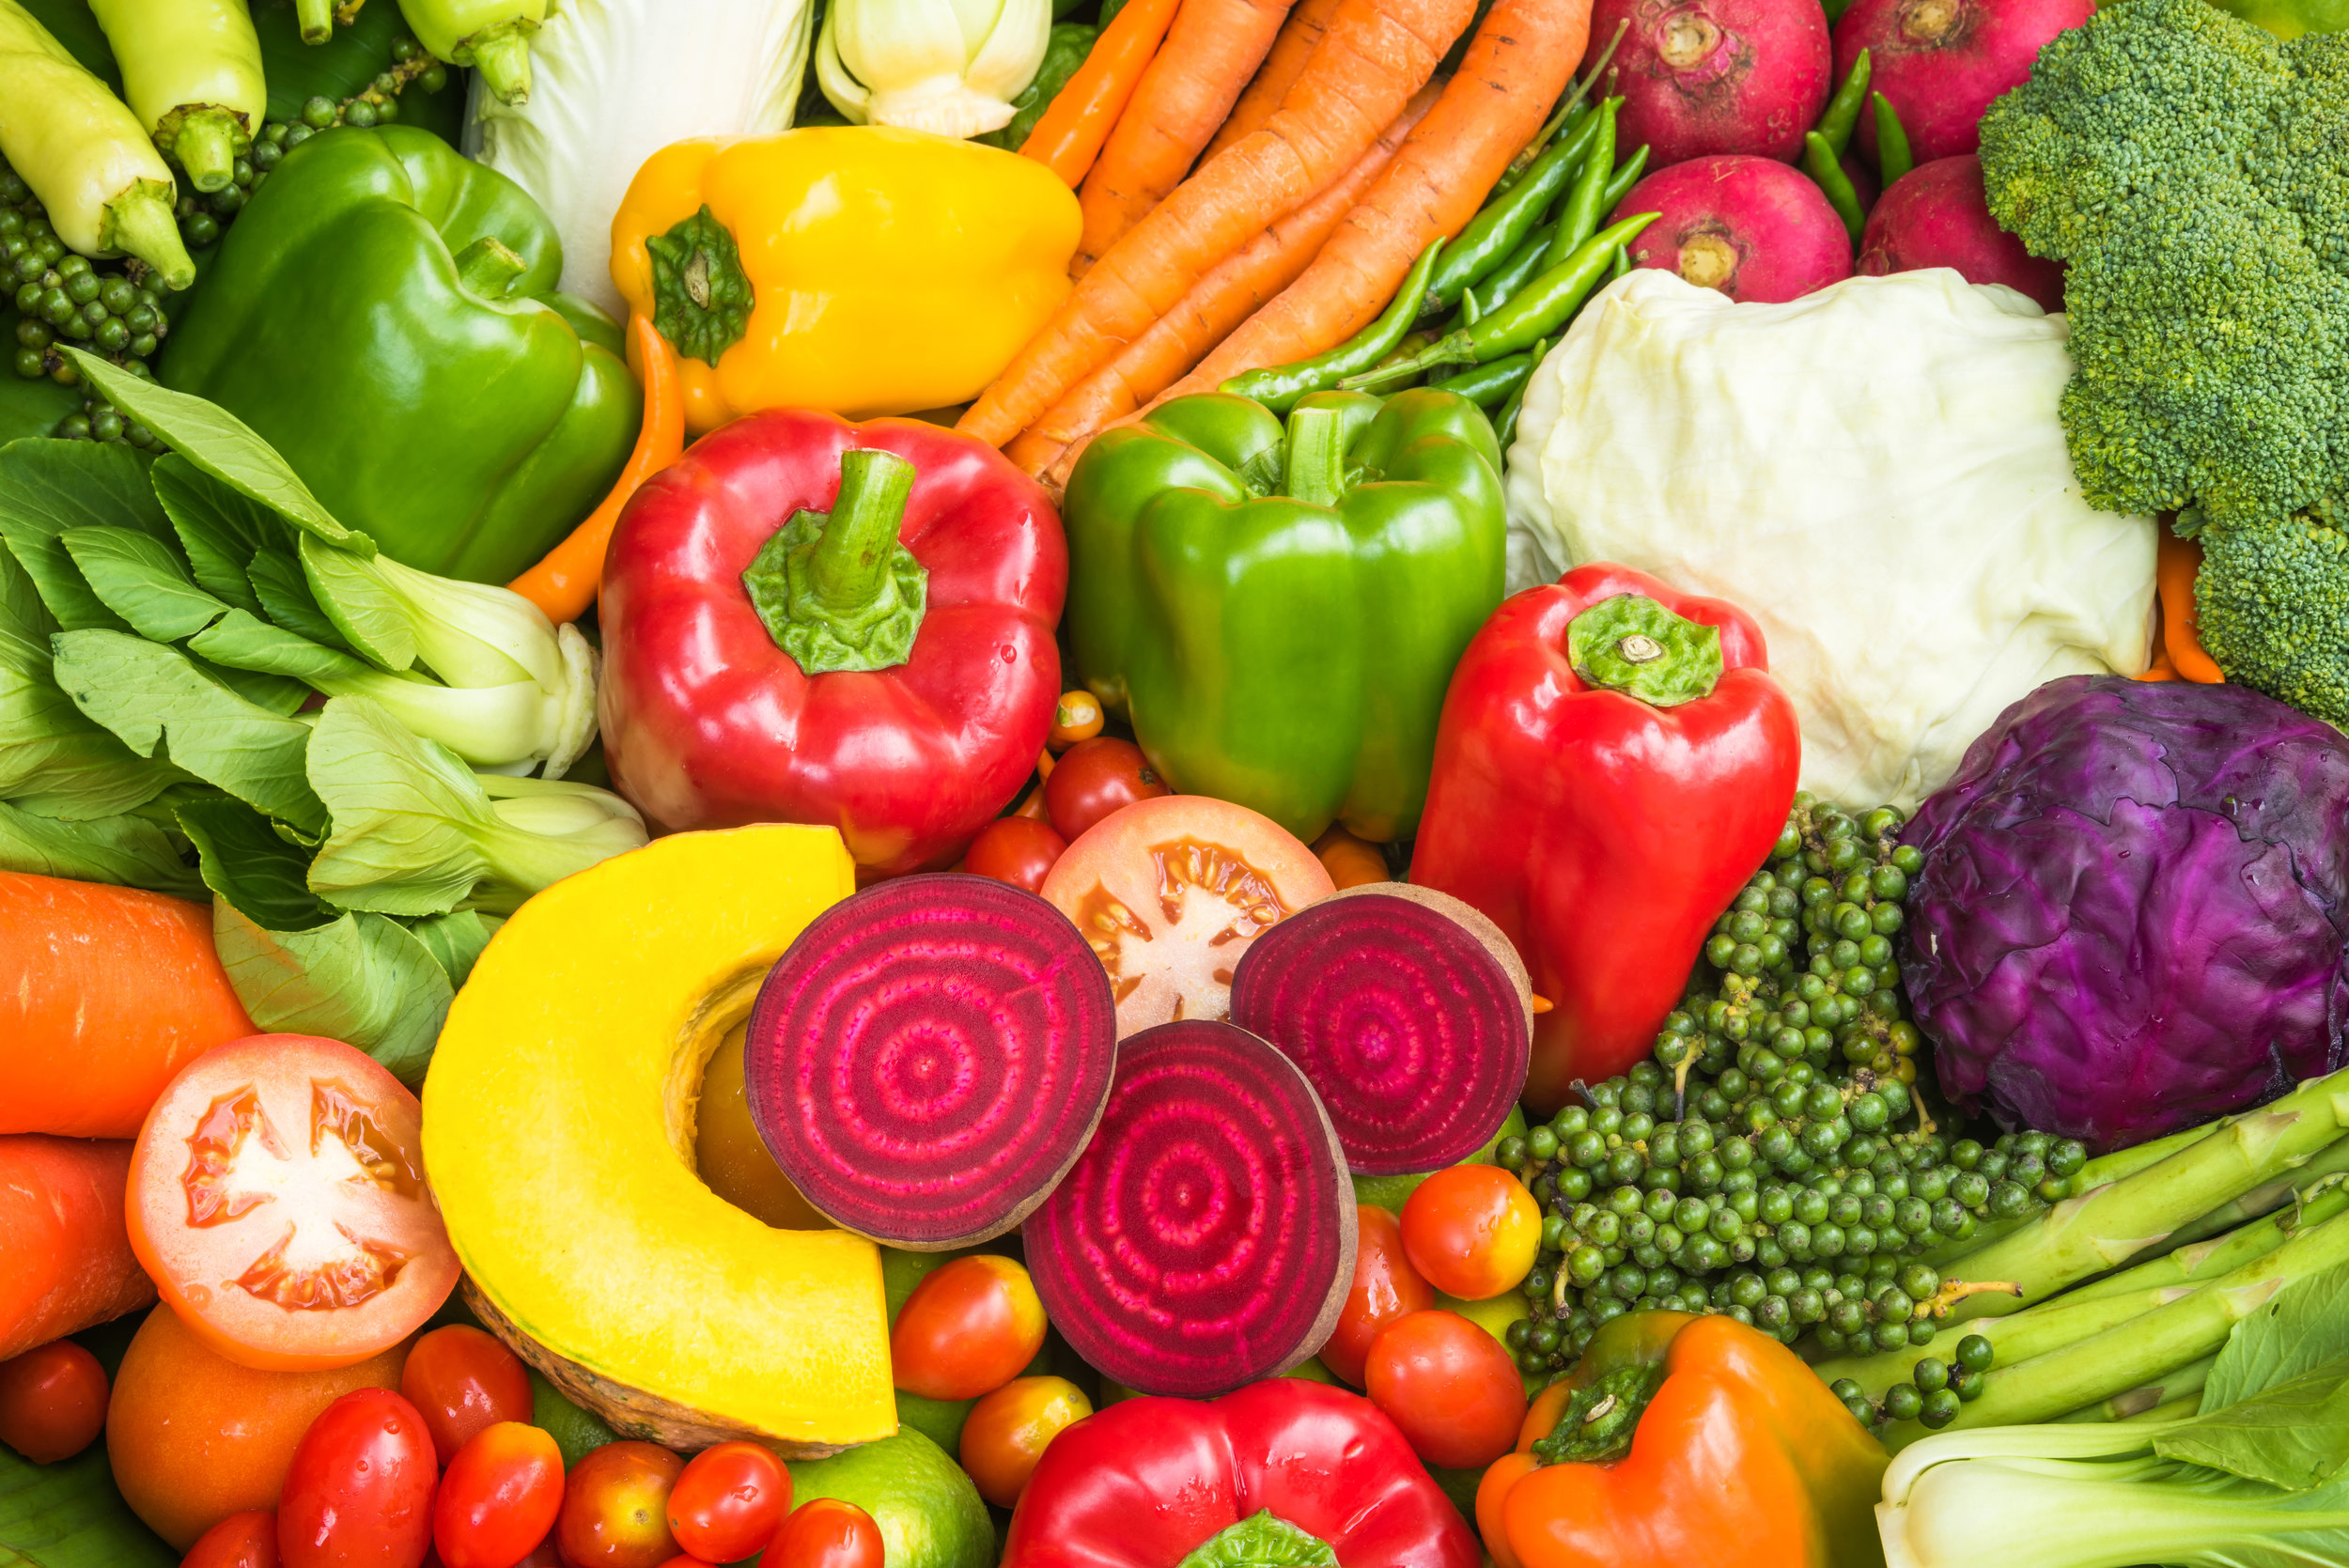 Different-fresh-fruits-and-vegetables-for-eating-healthy.jpg